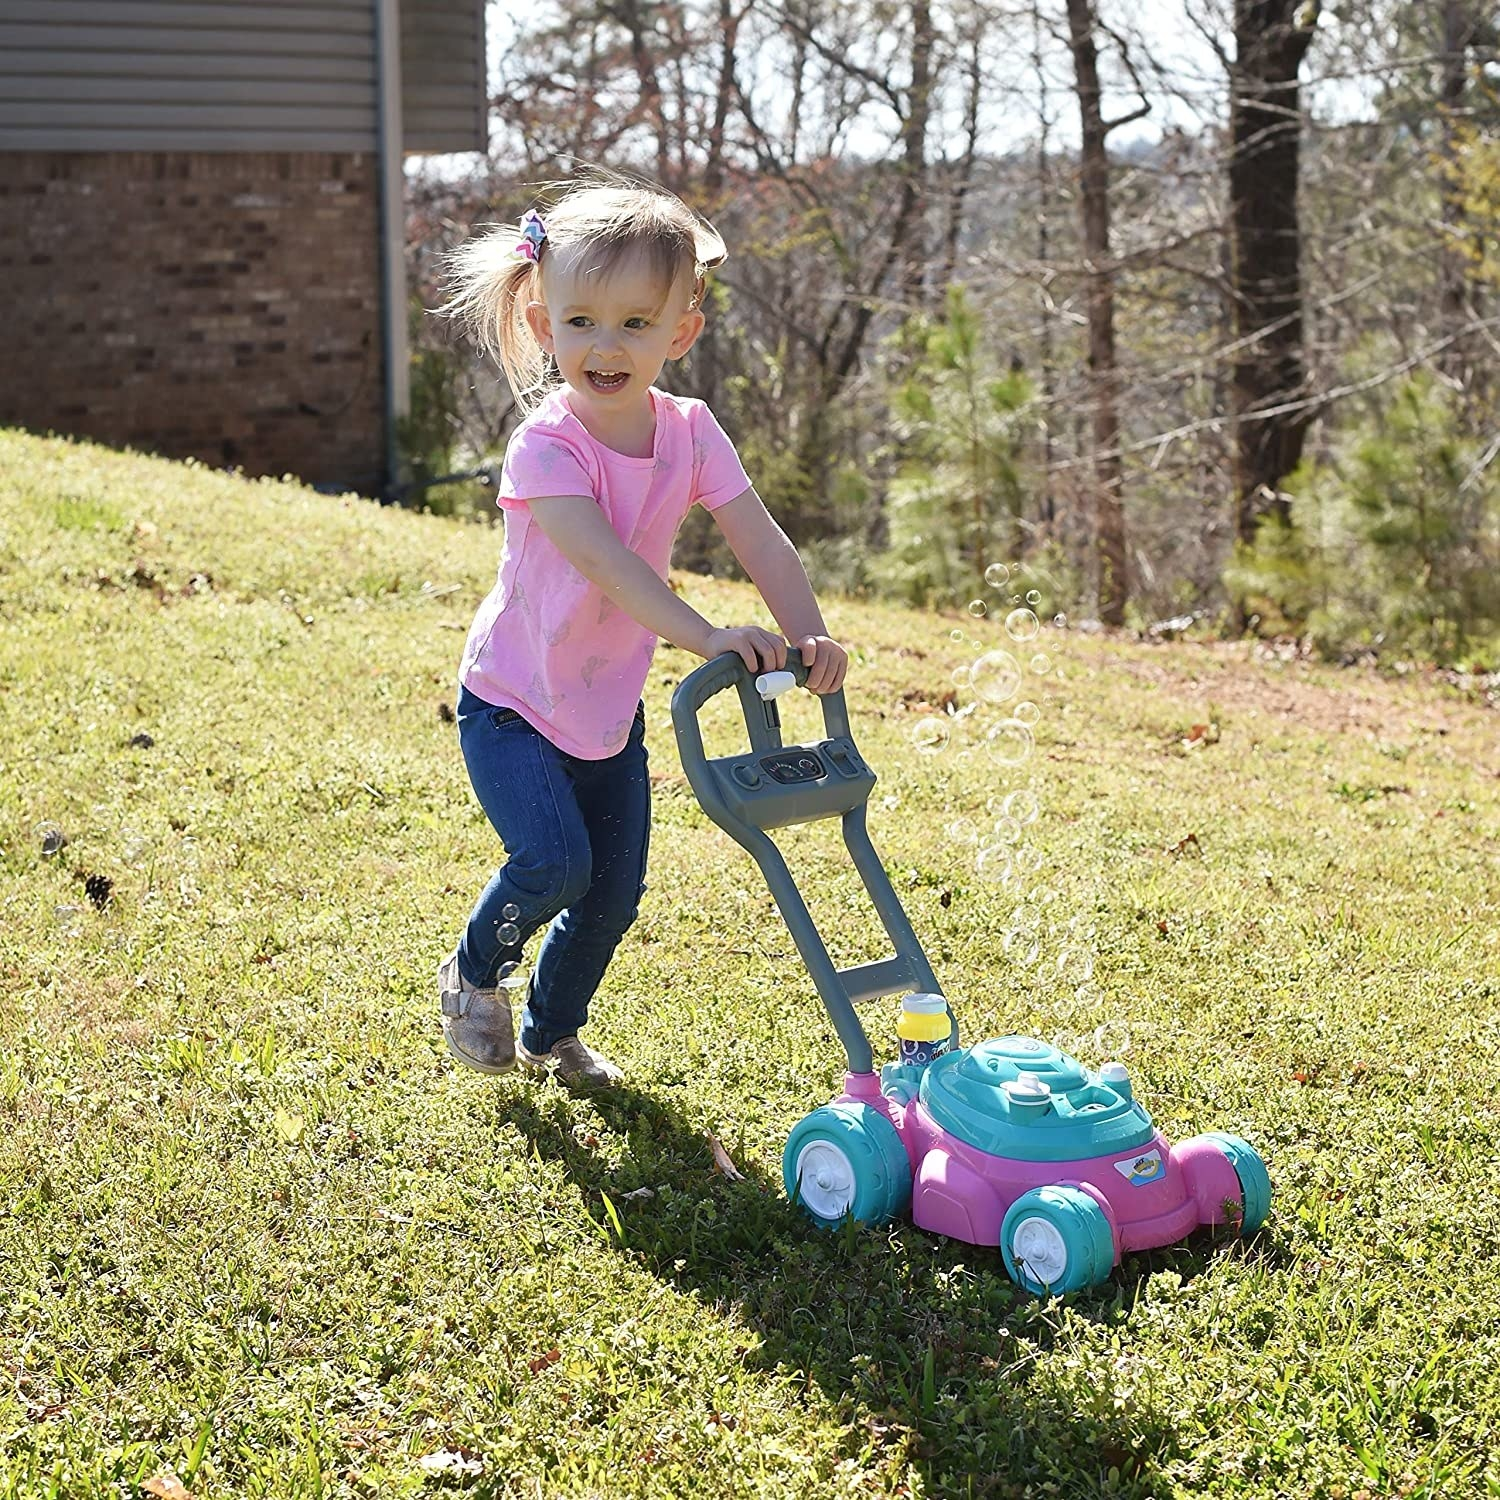 a child pushing the pink and teal blue lawn mower as bubbles rise from it